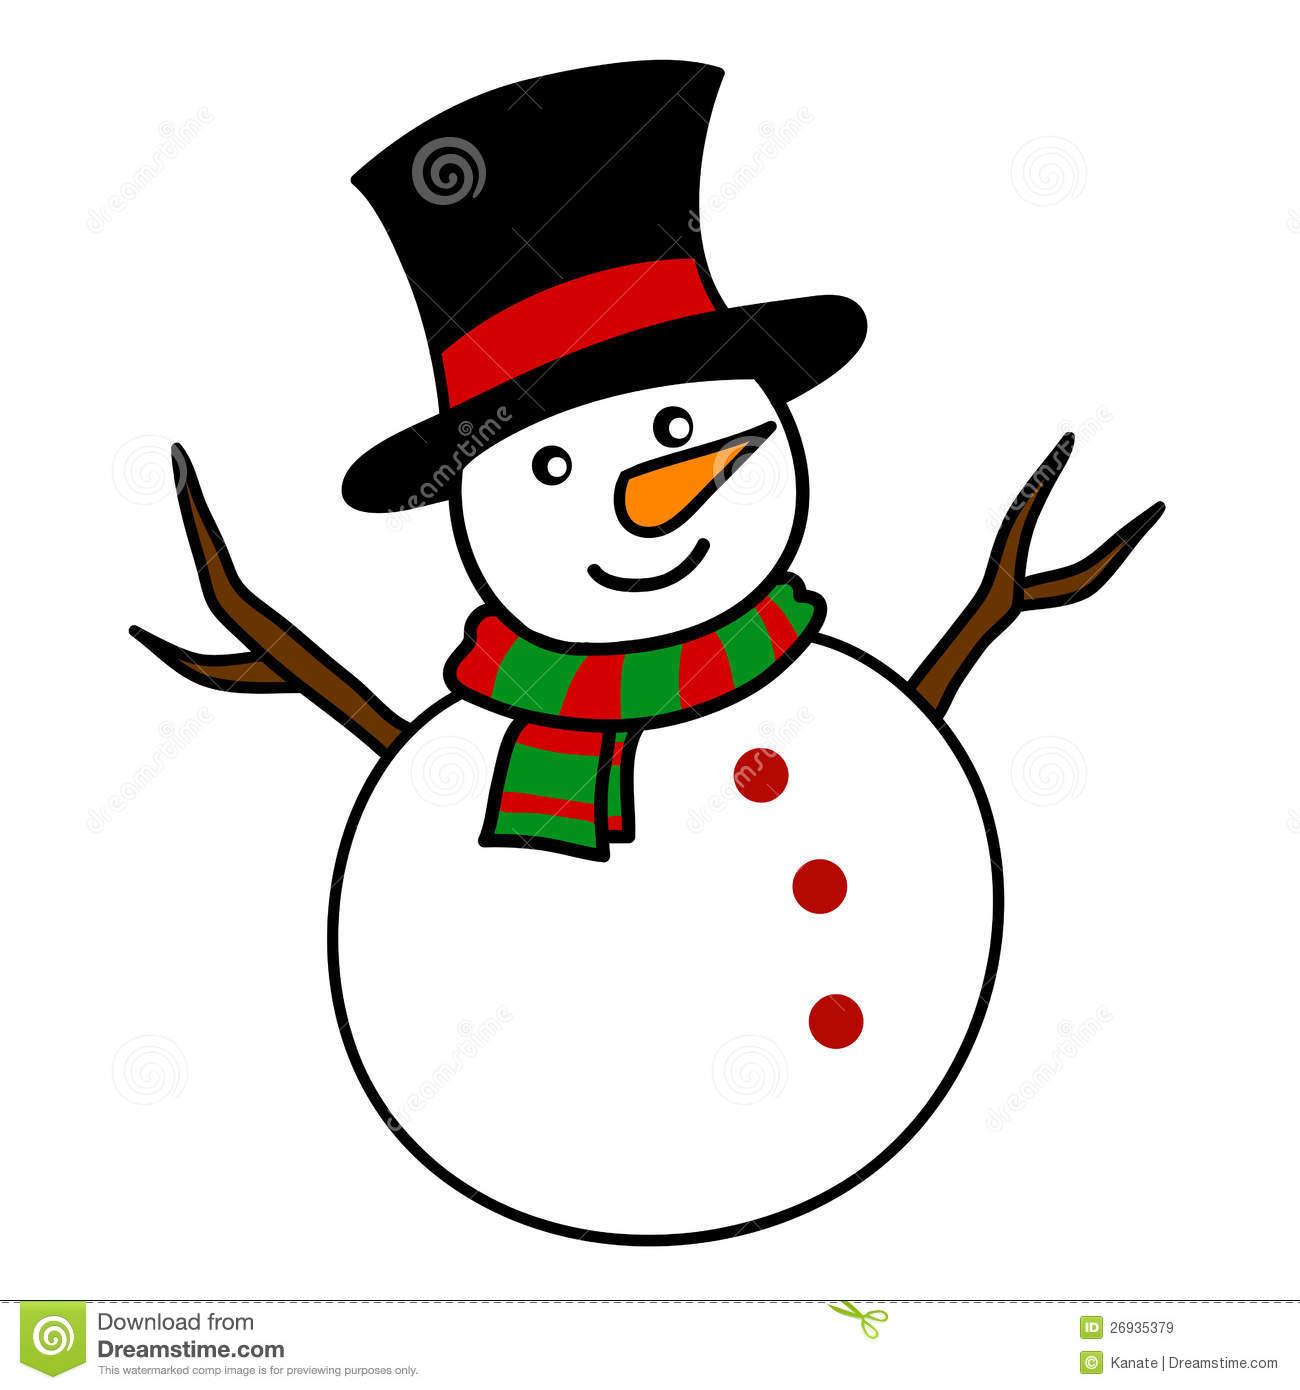 Christmas Snowman Cartoon. Royalty Free Stock Images - Image: 26935379